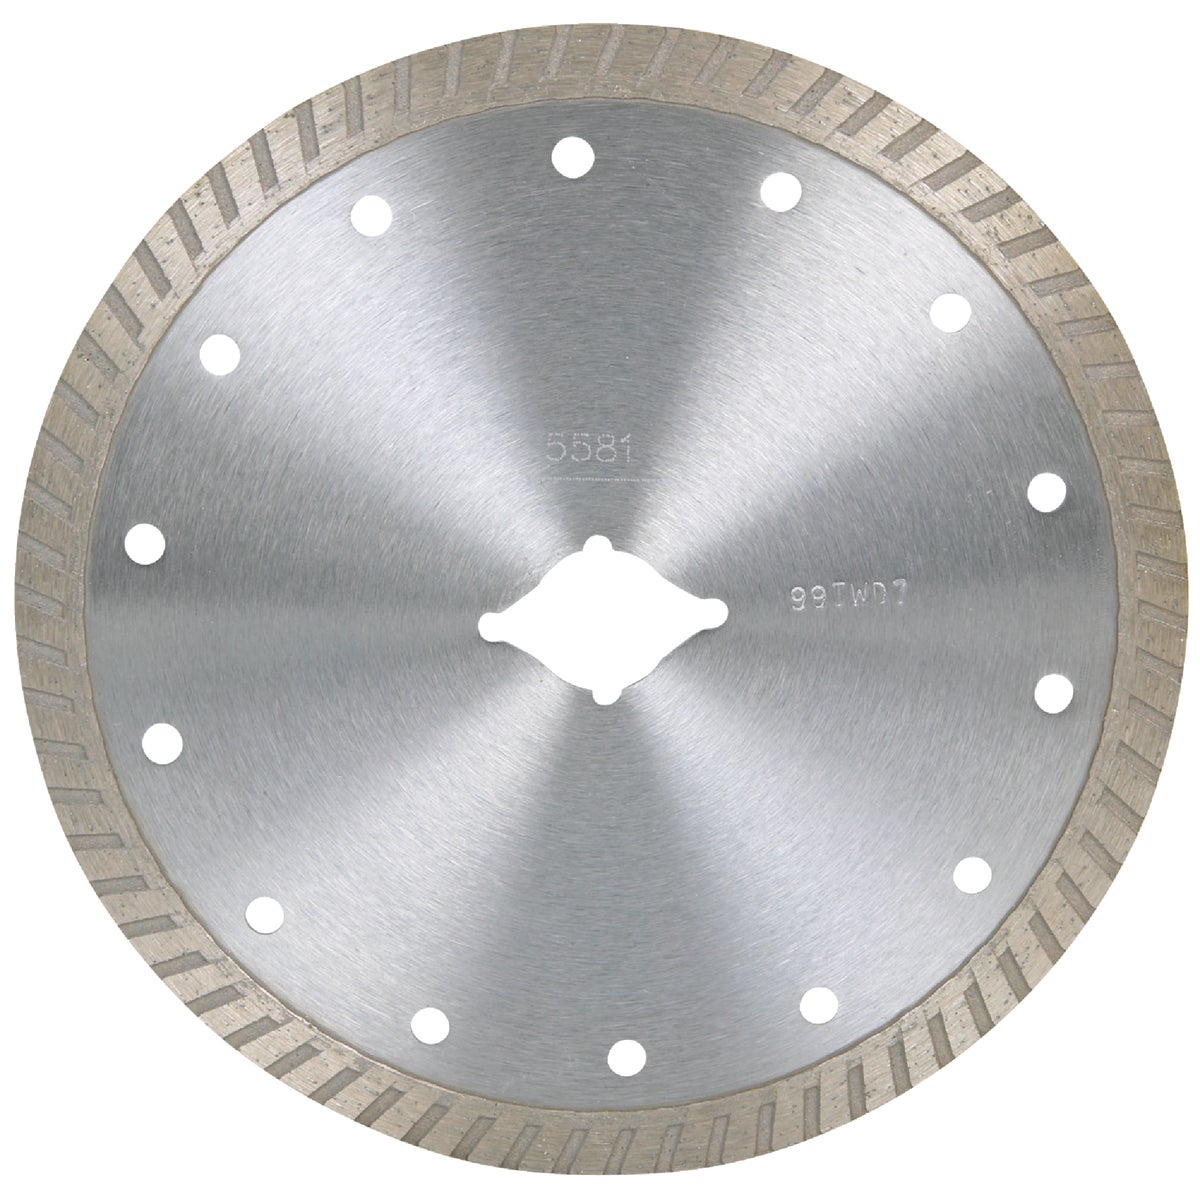 "7"" DIAMOND BLADE - 167022 by M K Diamond Products"